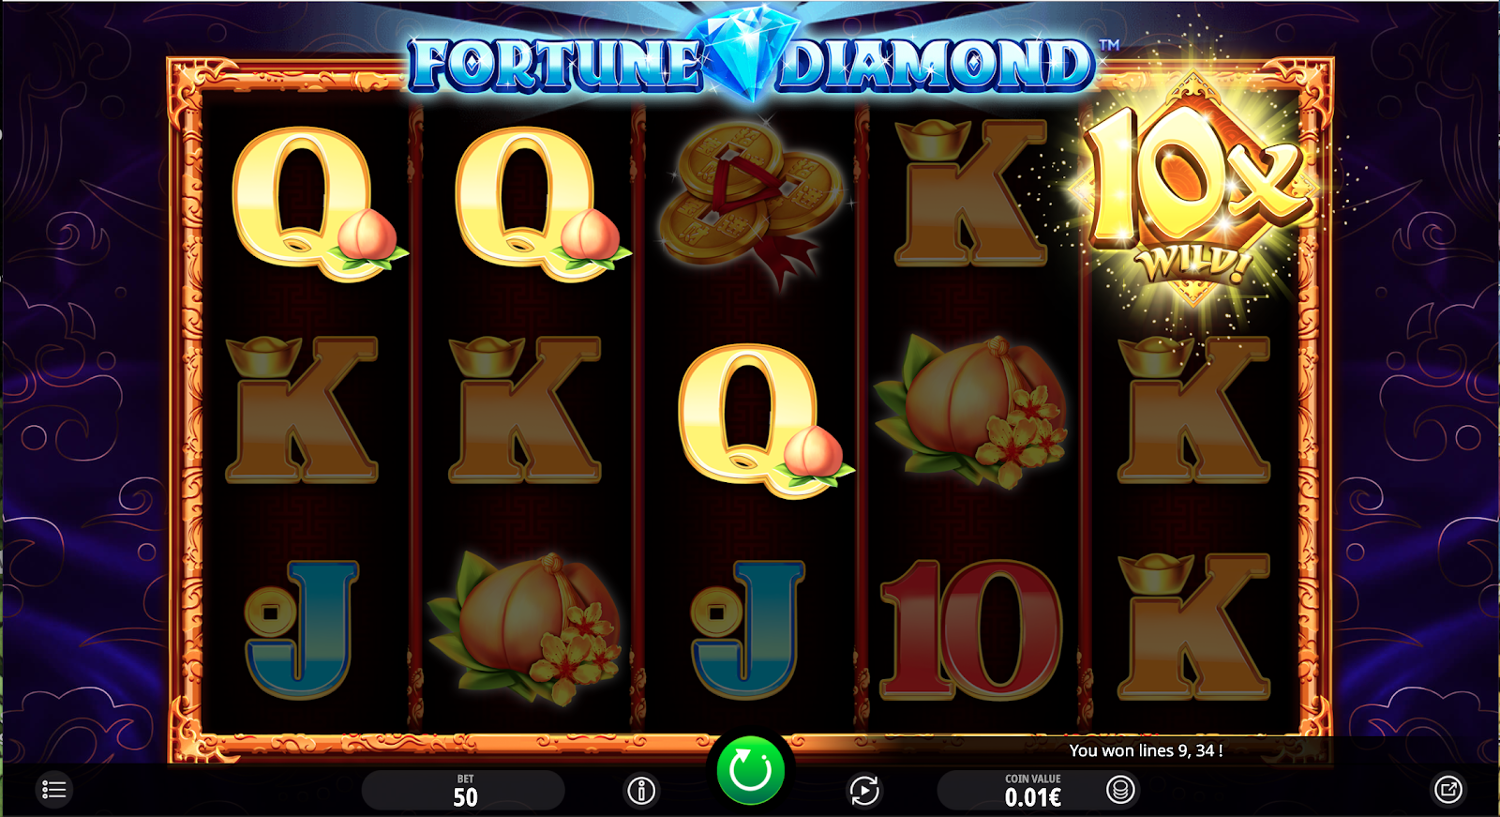 Fortune Diamond highest multiplier win